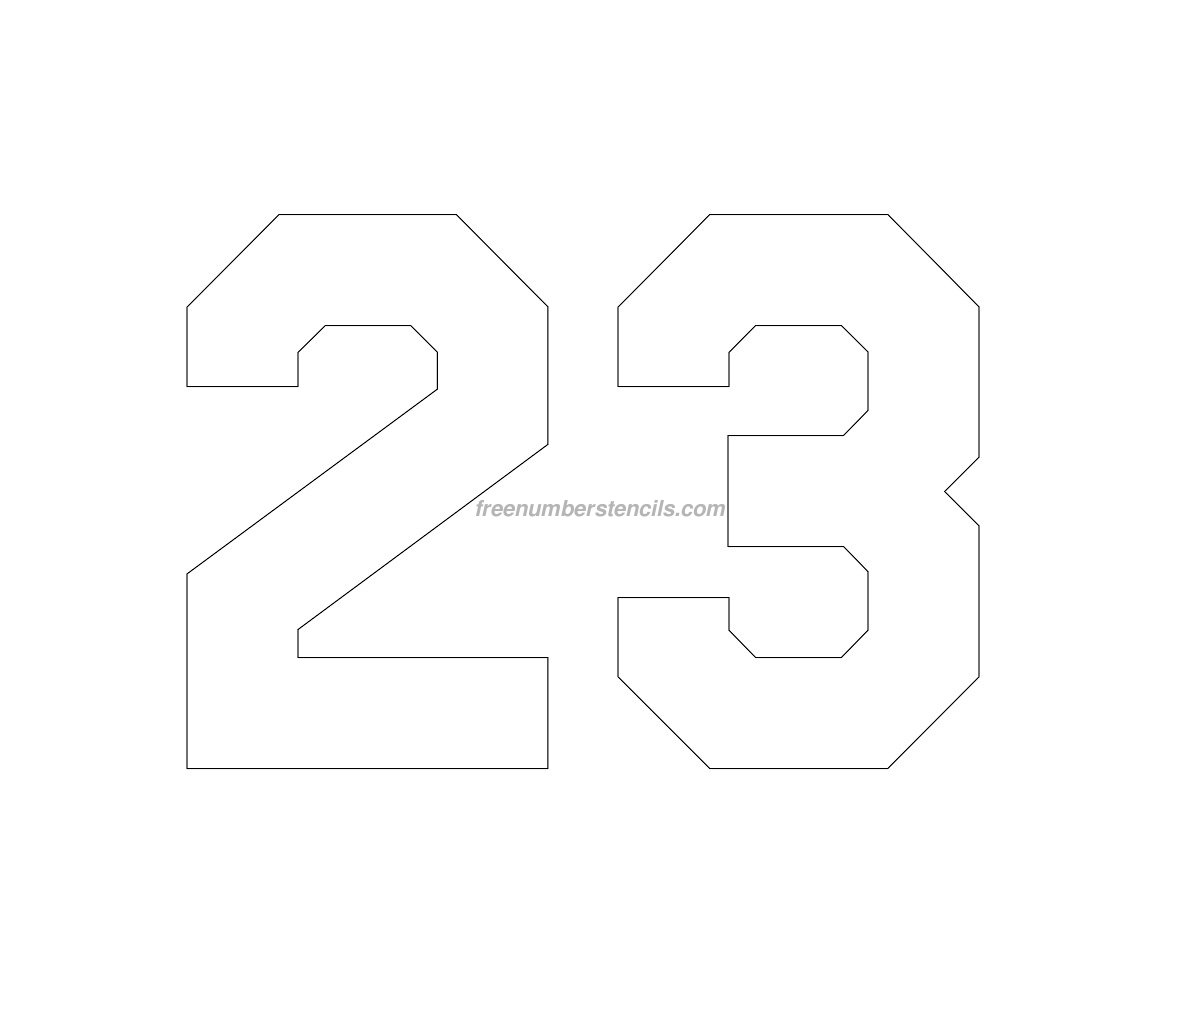 Free jersey printable 23 number stencil freenumberstencilscom for Free numbers templates